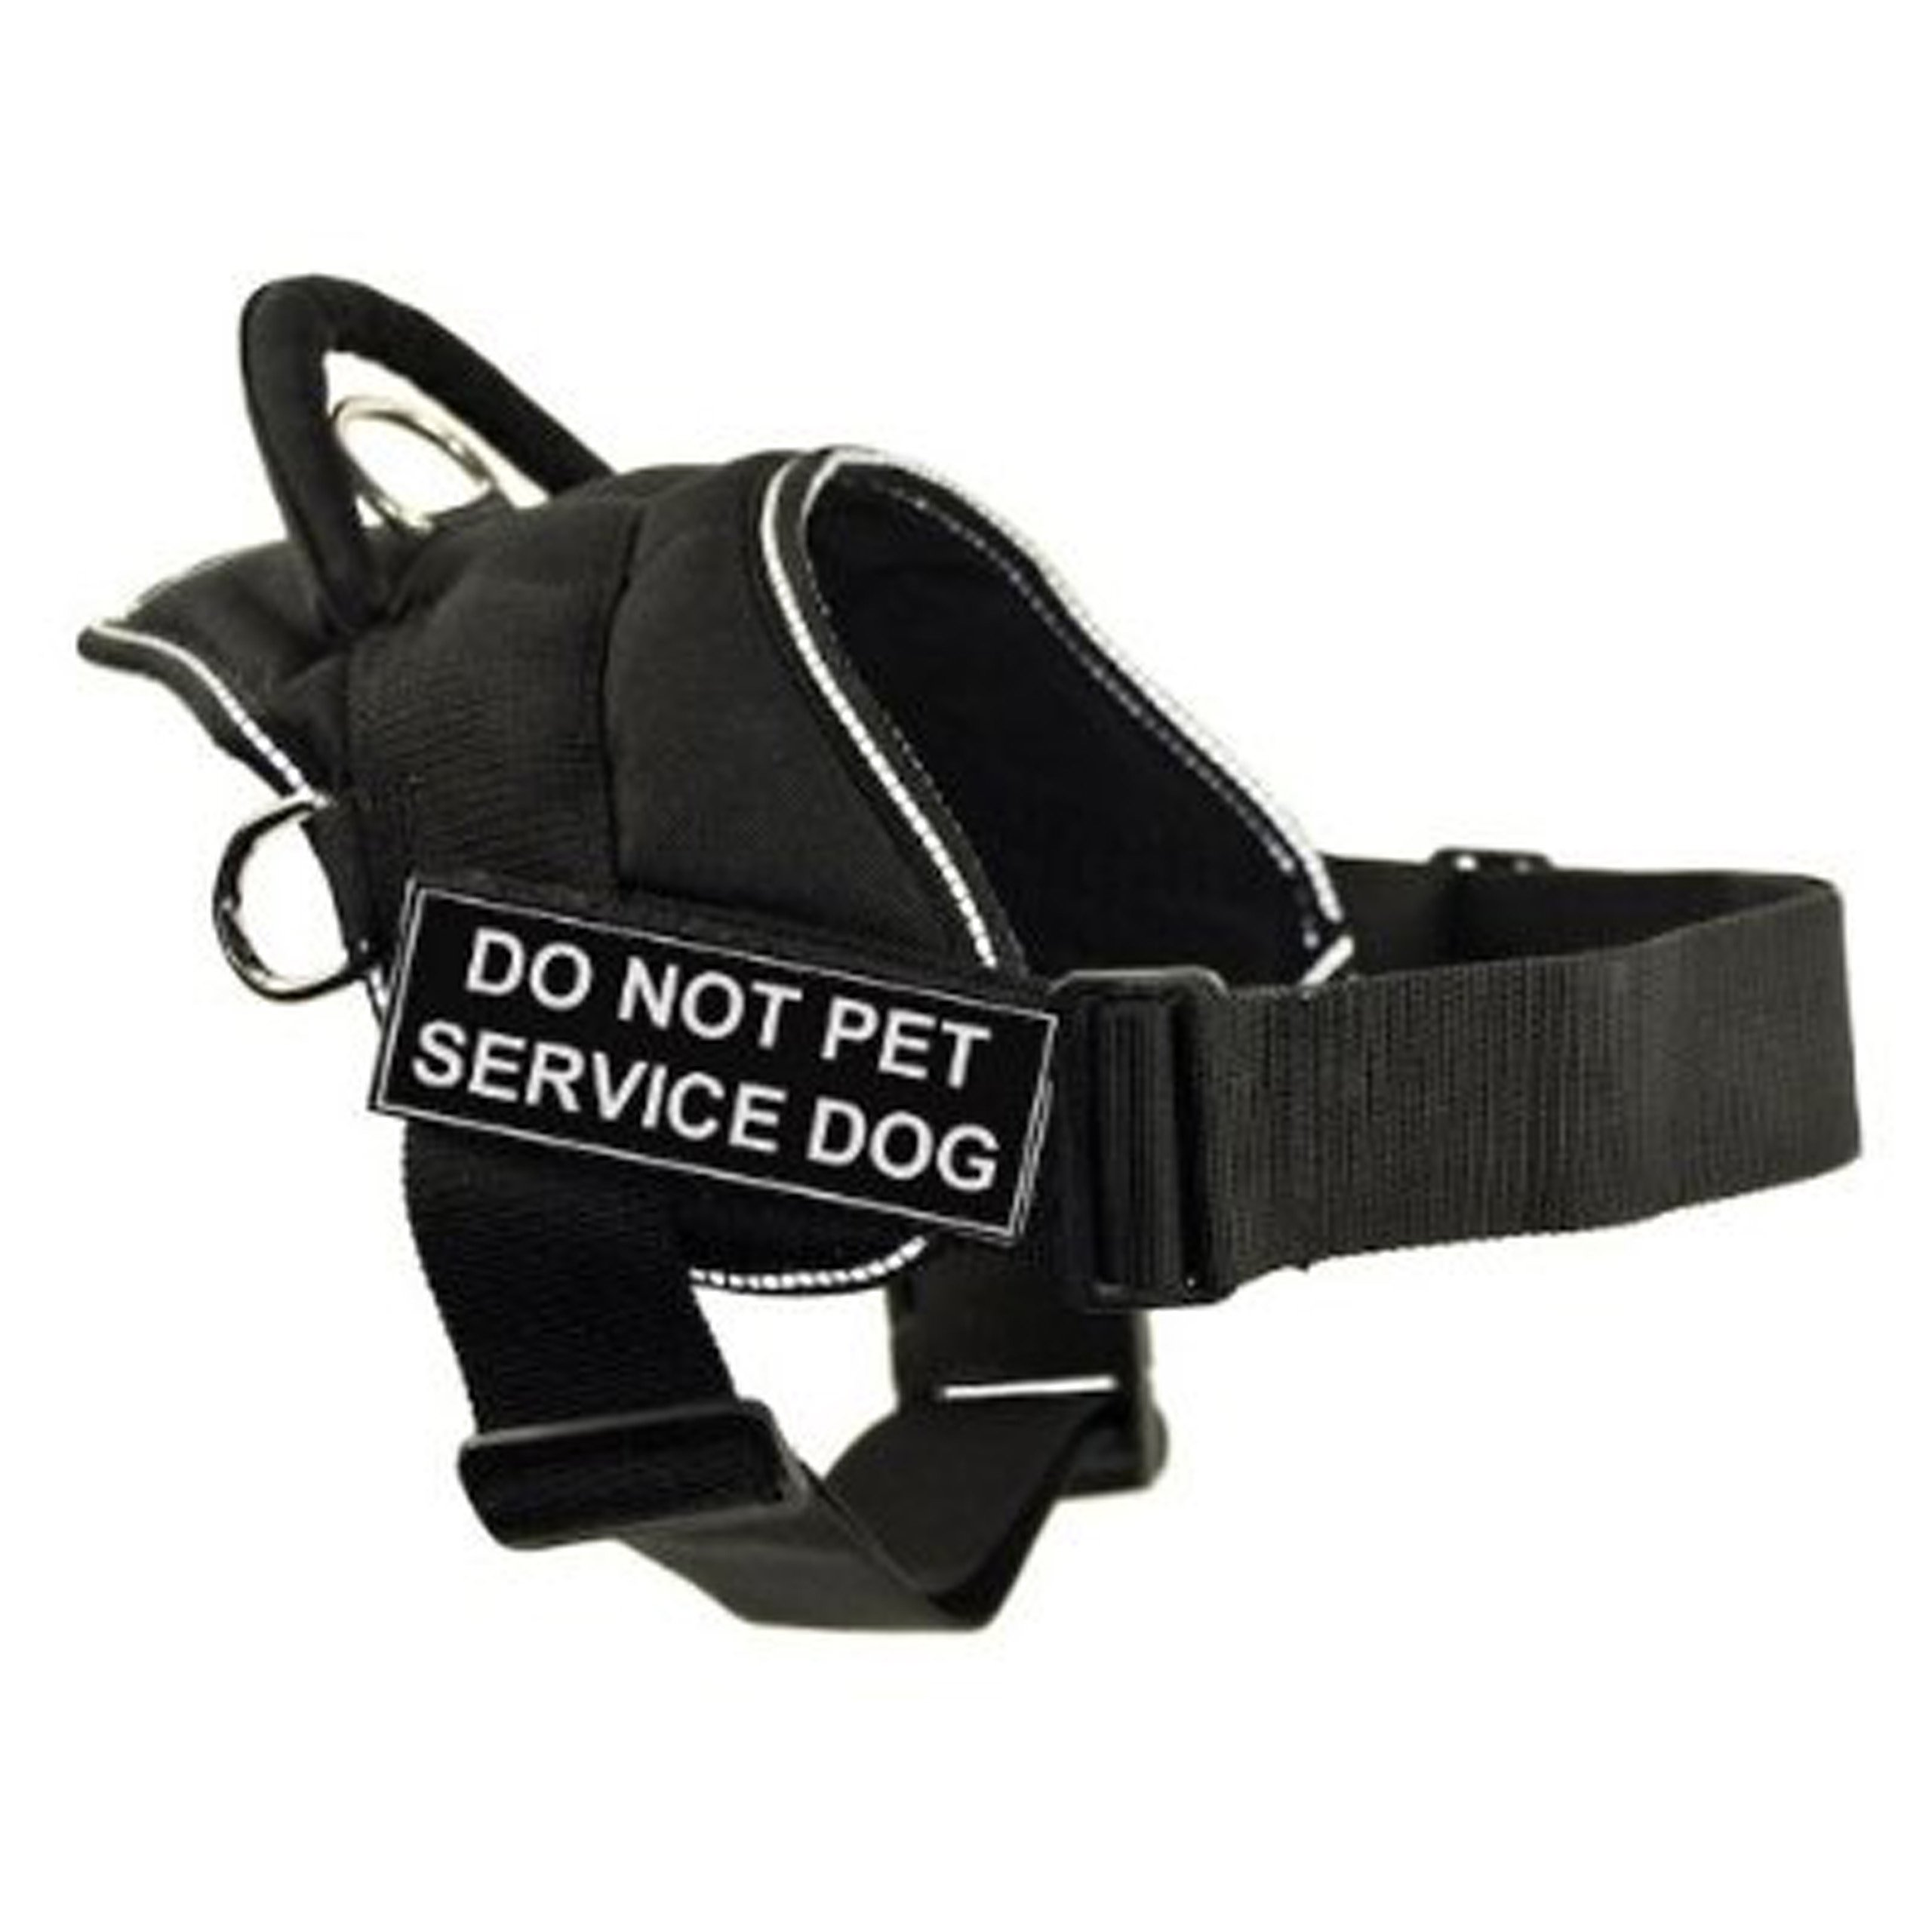 DT Fun Works Harness, Do Not Pet Service Dog, Black With Reflective Trim, Small - Fits Girth Size: 22-Inch to 27-Inch